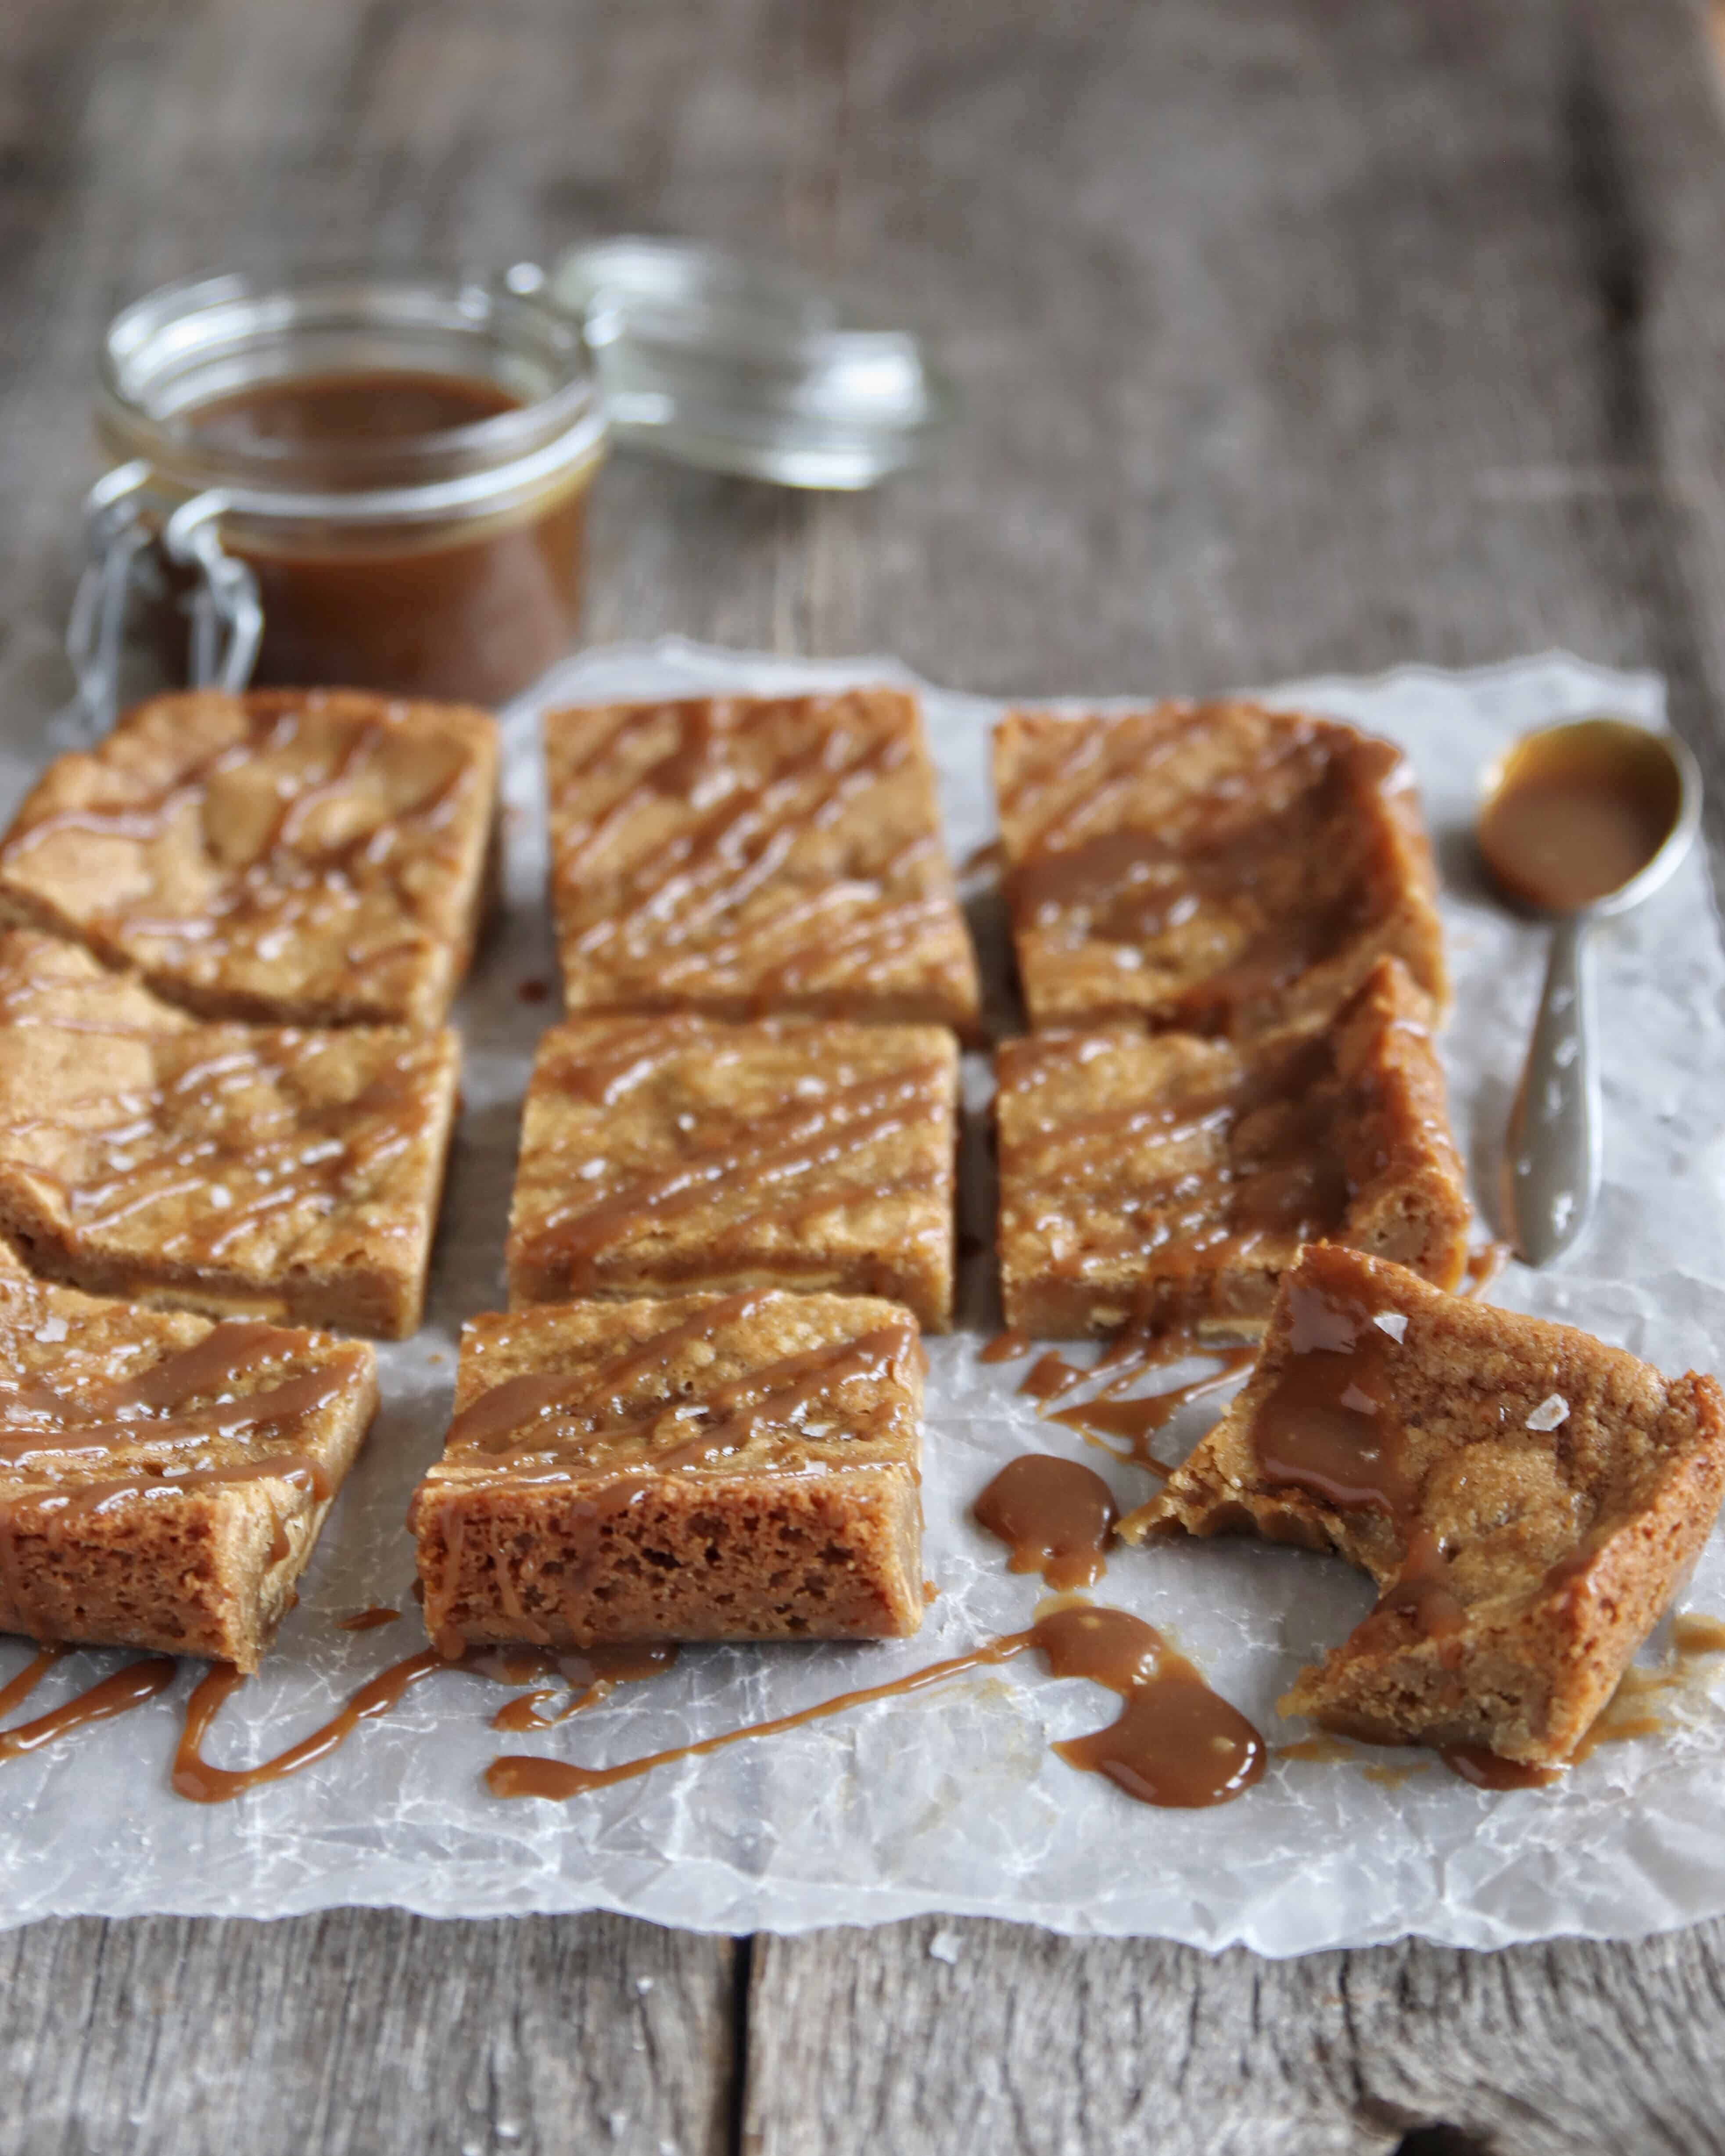 blondies on parchment drizzled with butterscotch sauce